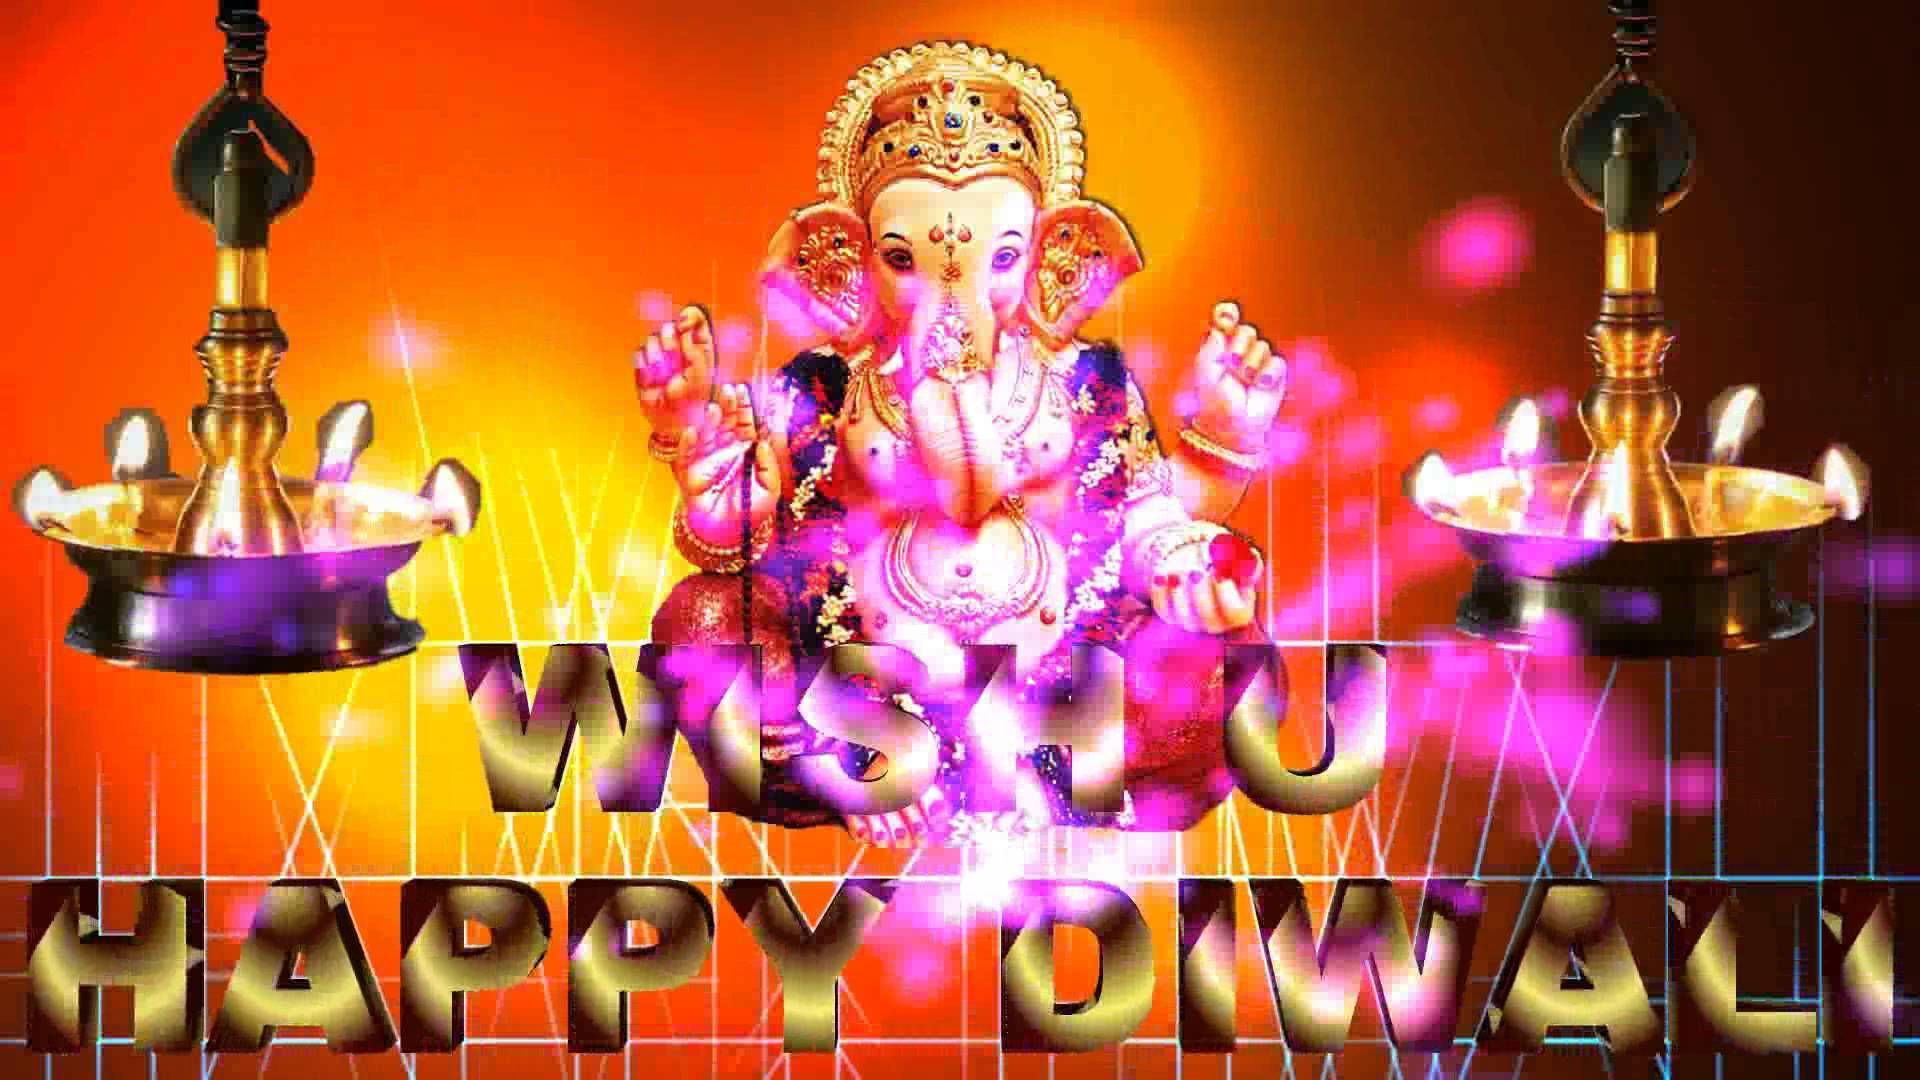 Diwal greetings wishes animated pictures diwali pinterest diwal greetings wishes animated pictures diwali pinterest diwali diwali greetings and glitter images m4hsunfo